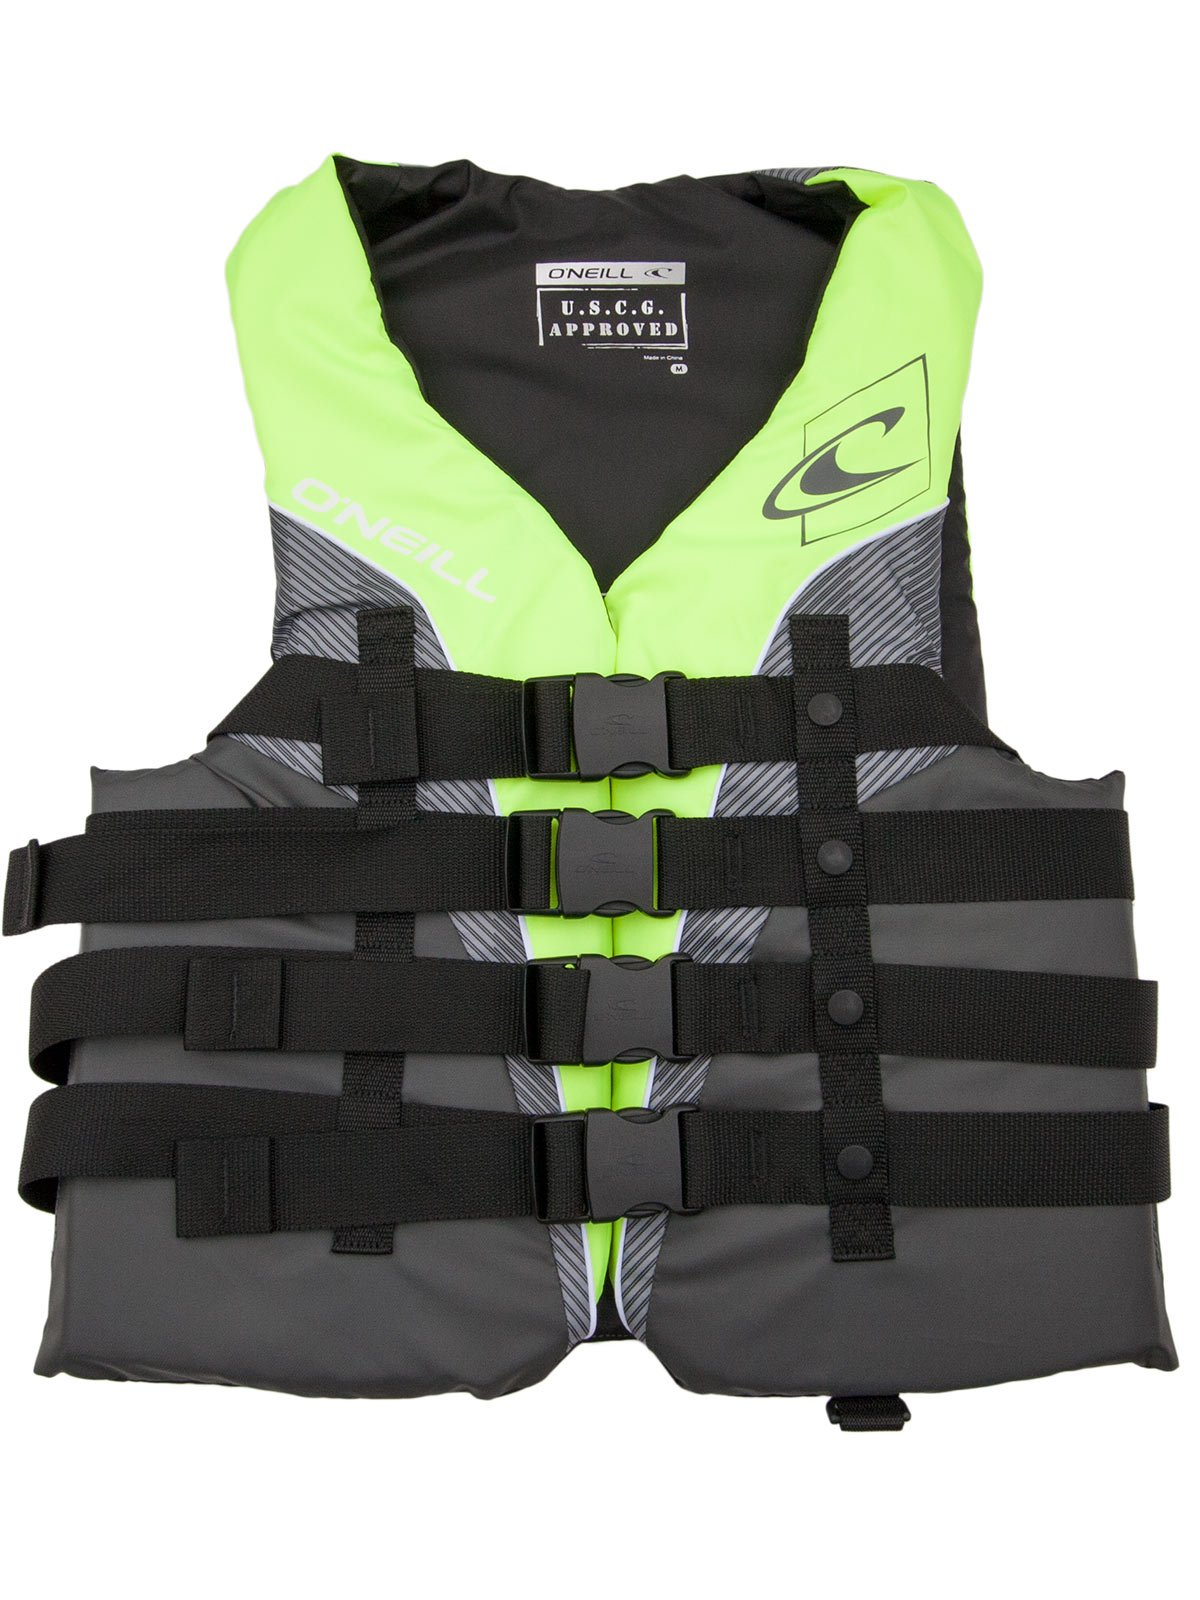 O'Neill Mens Superlite USCG Life Vest XL Lime/Graphite/Smoke/White (4723) by O'NEILL